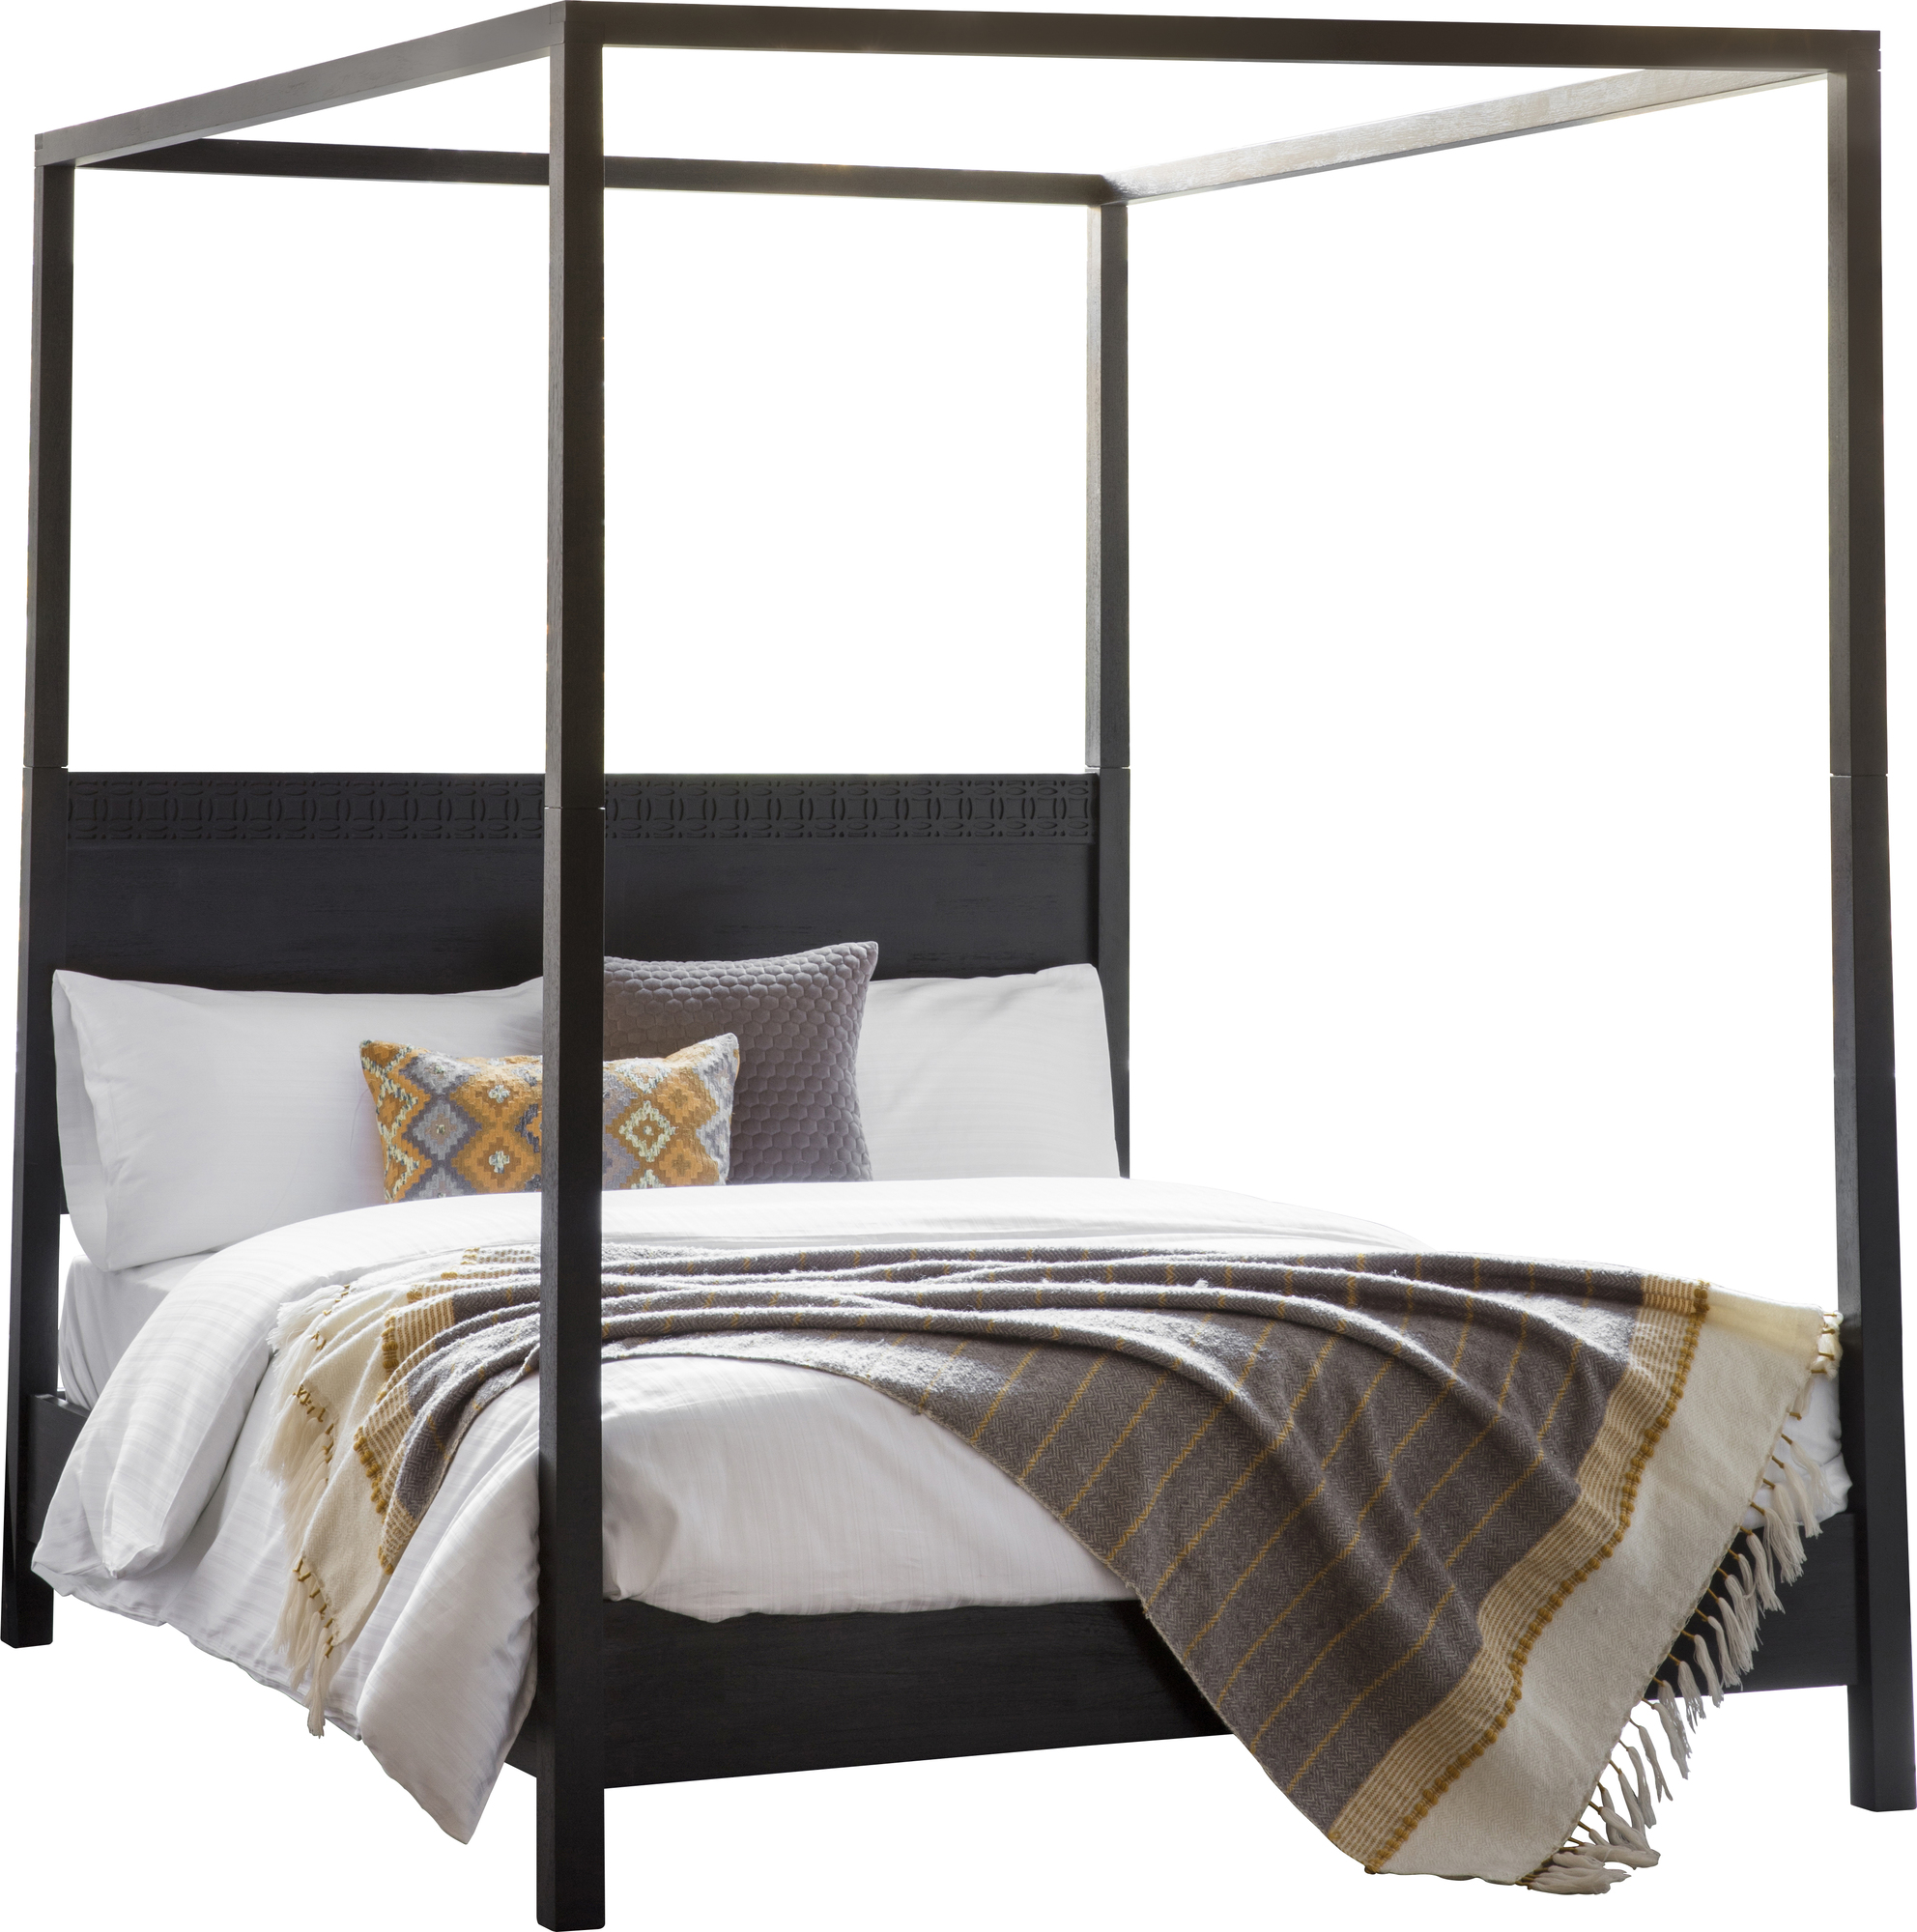 Bella Casa Barlis 4 Poster Bed Reviews Temple Webster